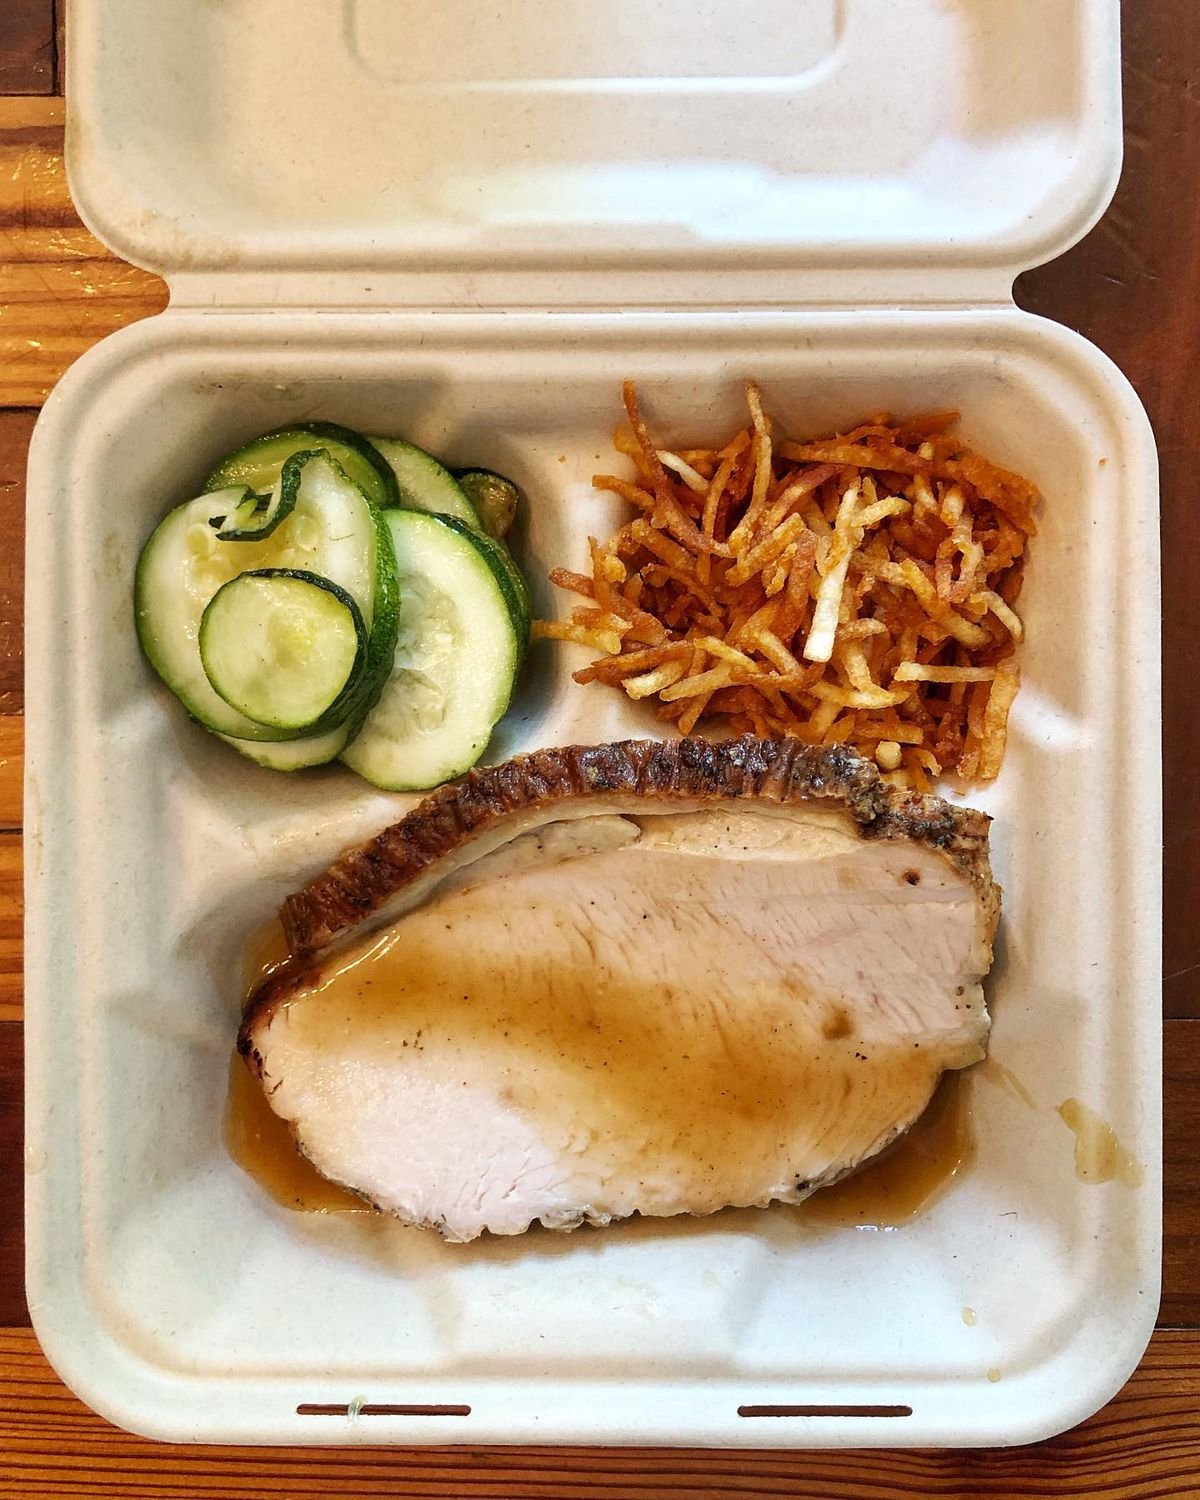 A meal for Table & Aid featuring roast turkey breast, roasted zucchini, and shoestring potatoes